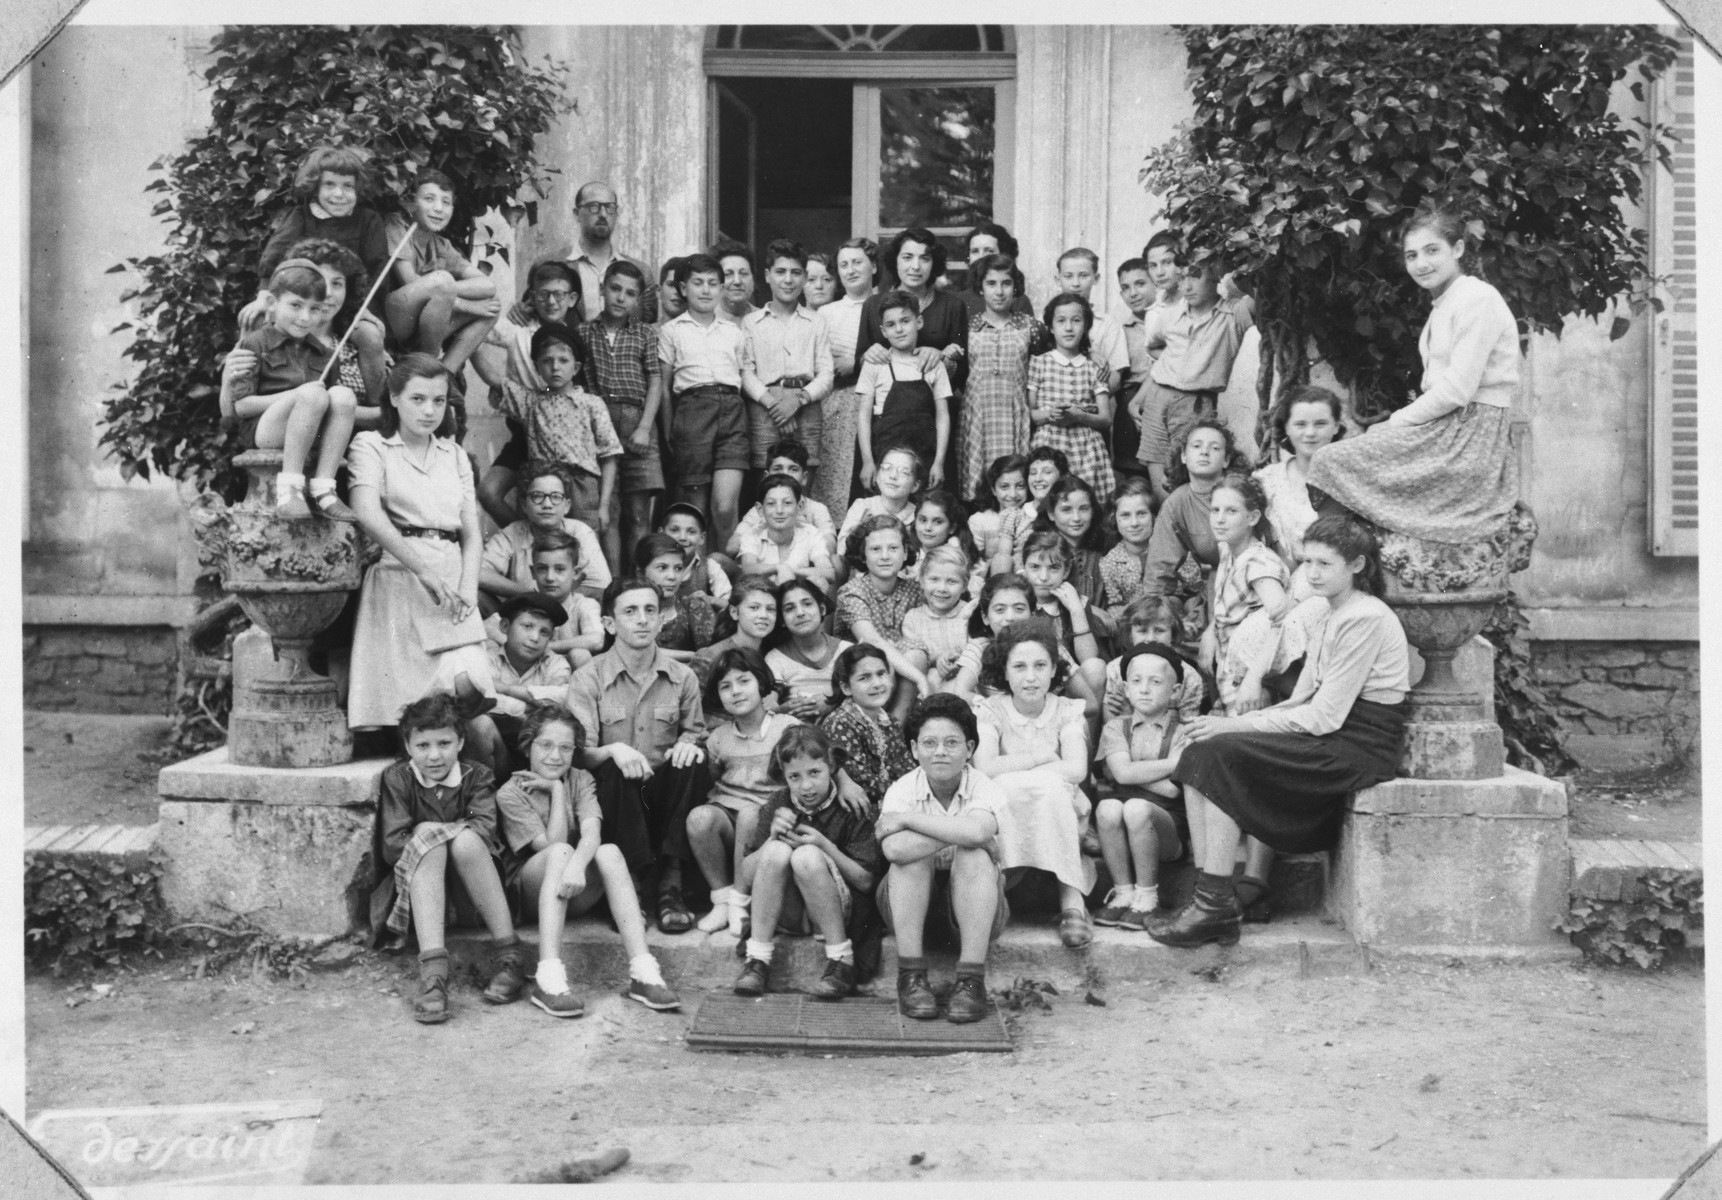 Group portrait of the children and staff of the Château de Vaucelle children's home in Taverny.